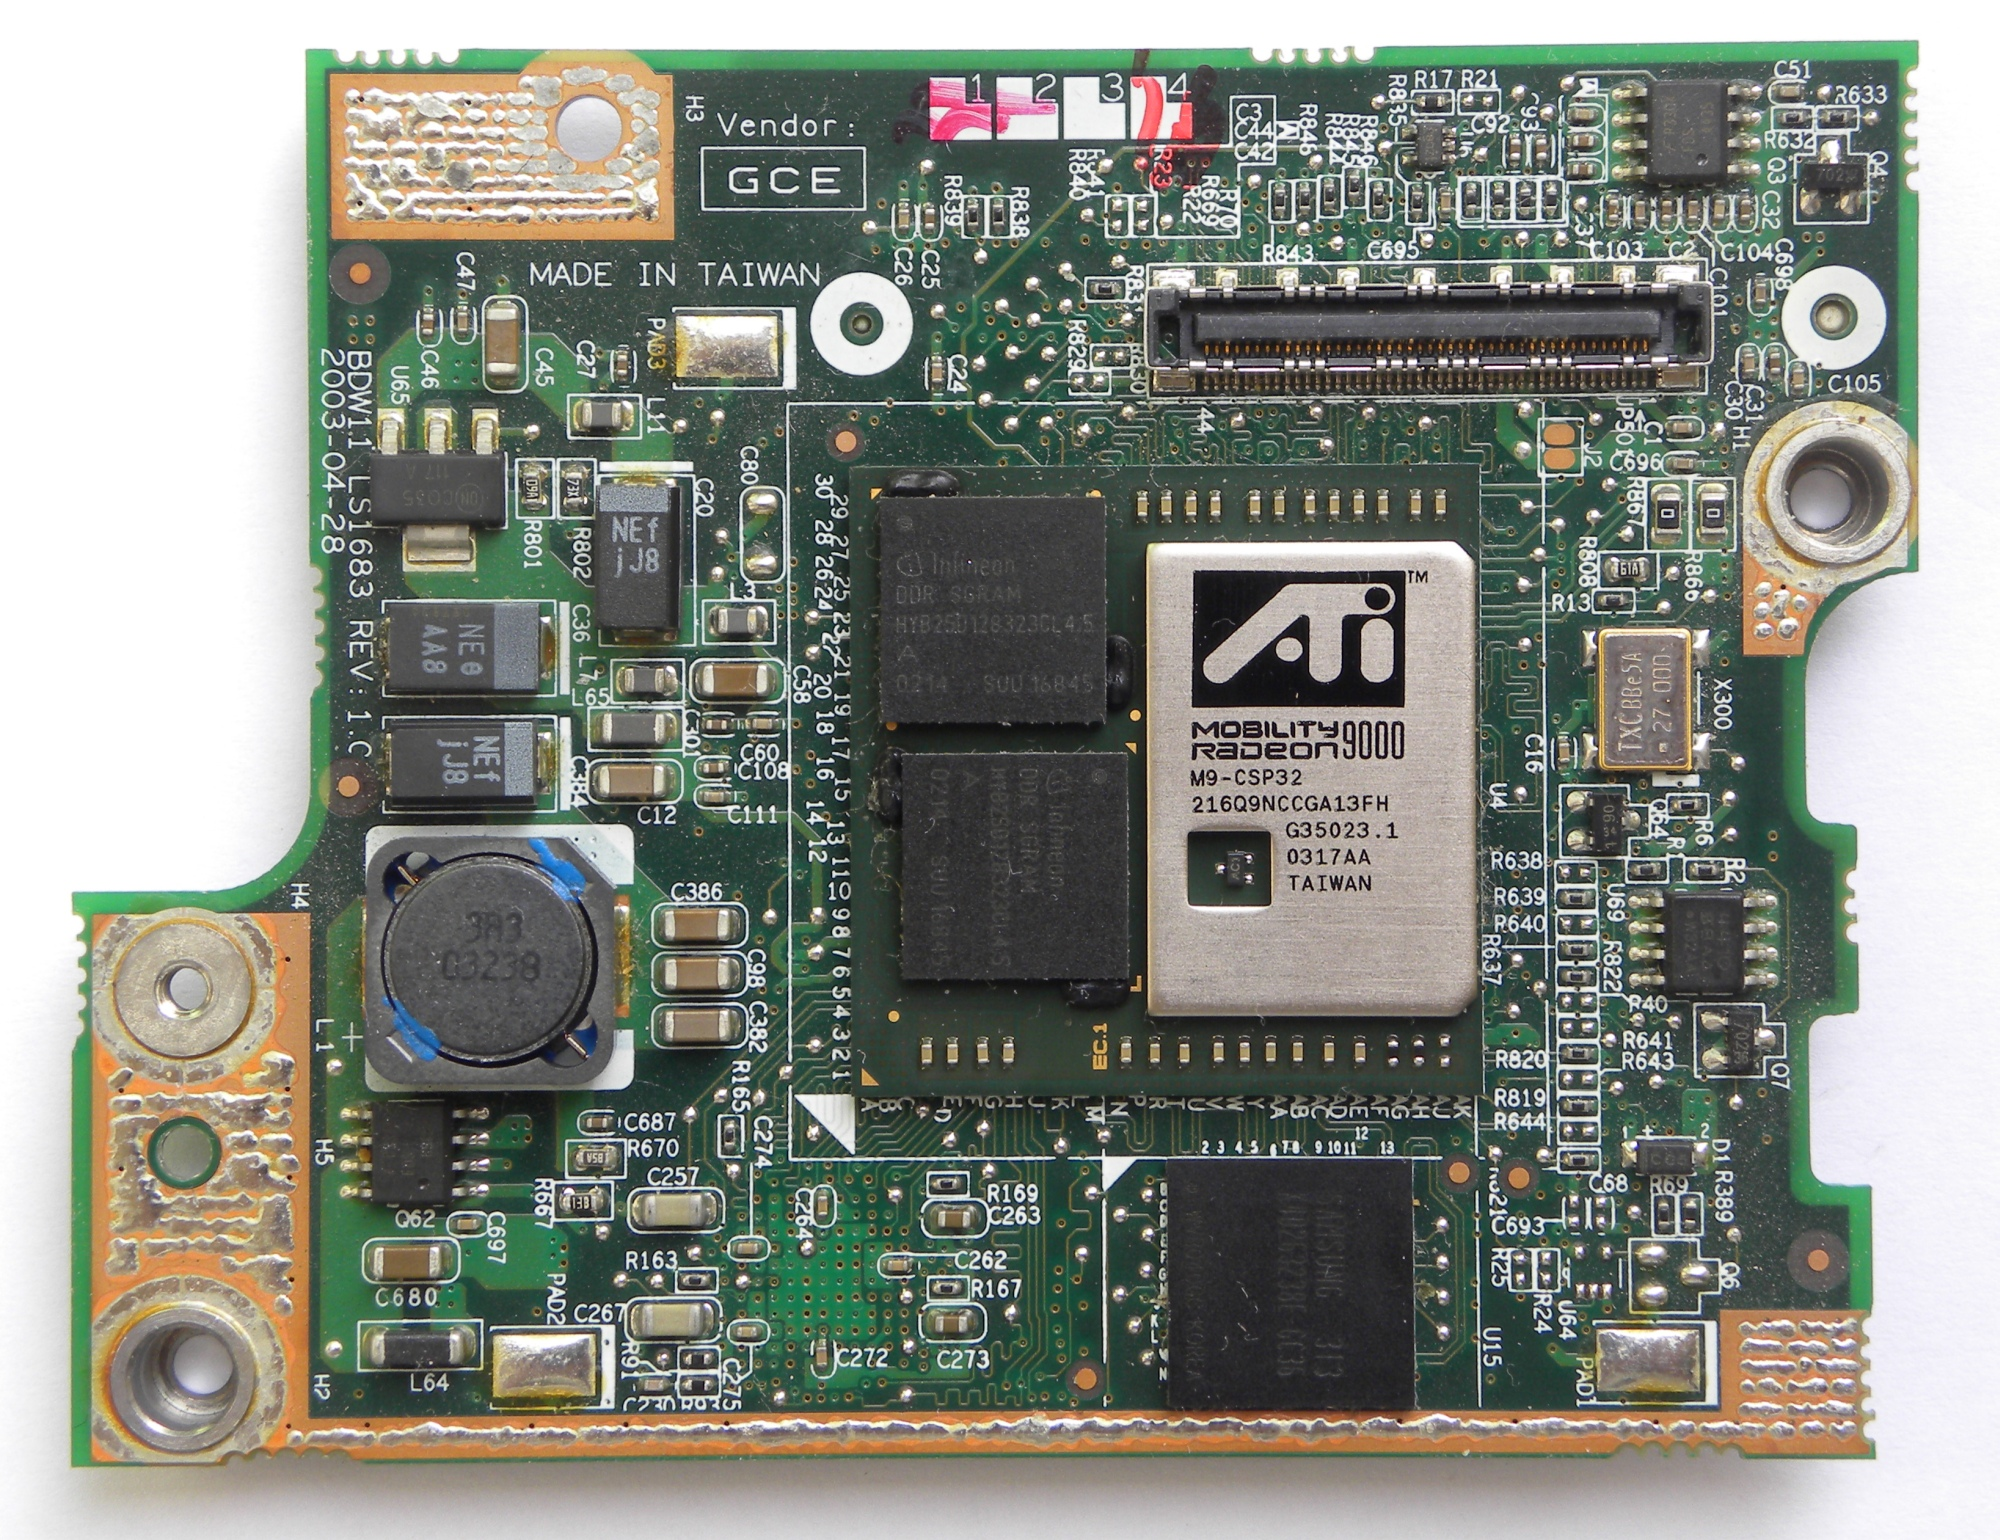 Ati radeon 9000 rv250 driver windows 7